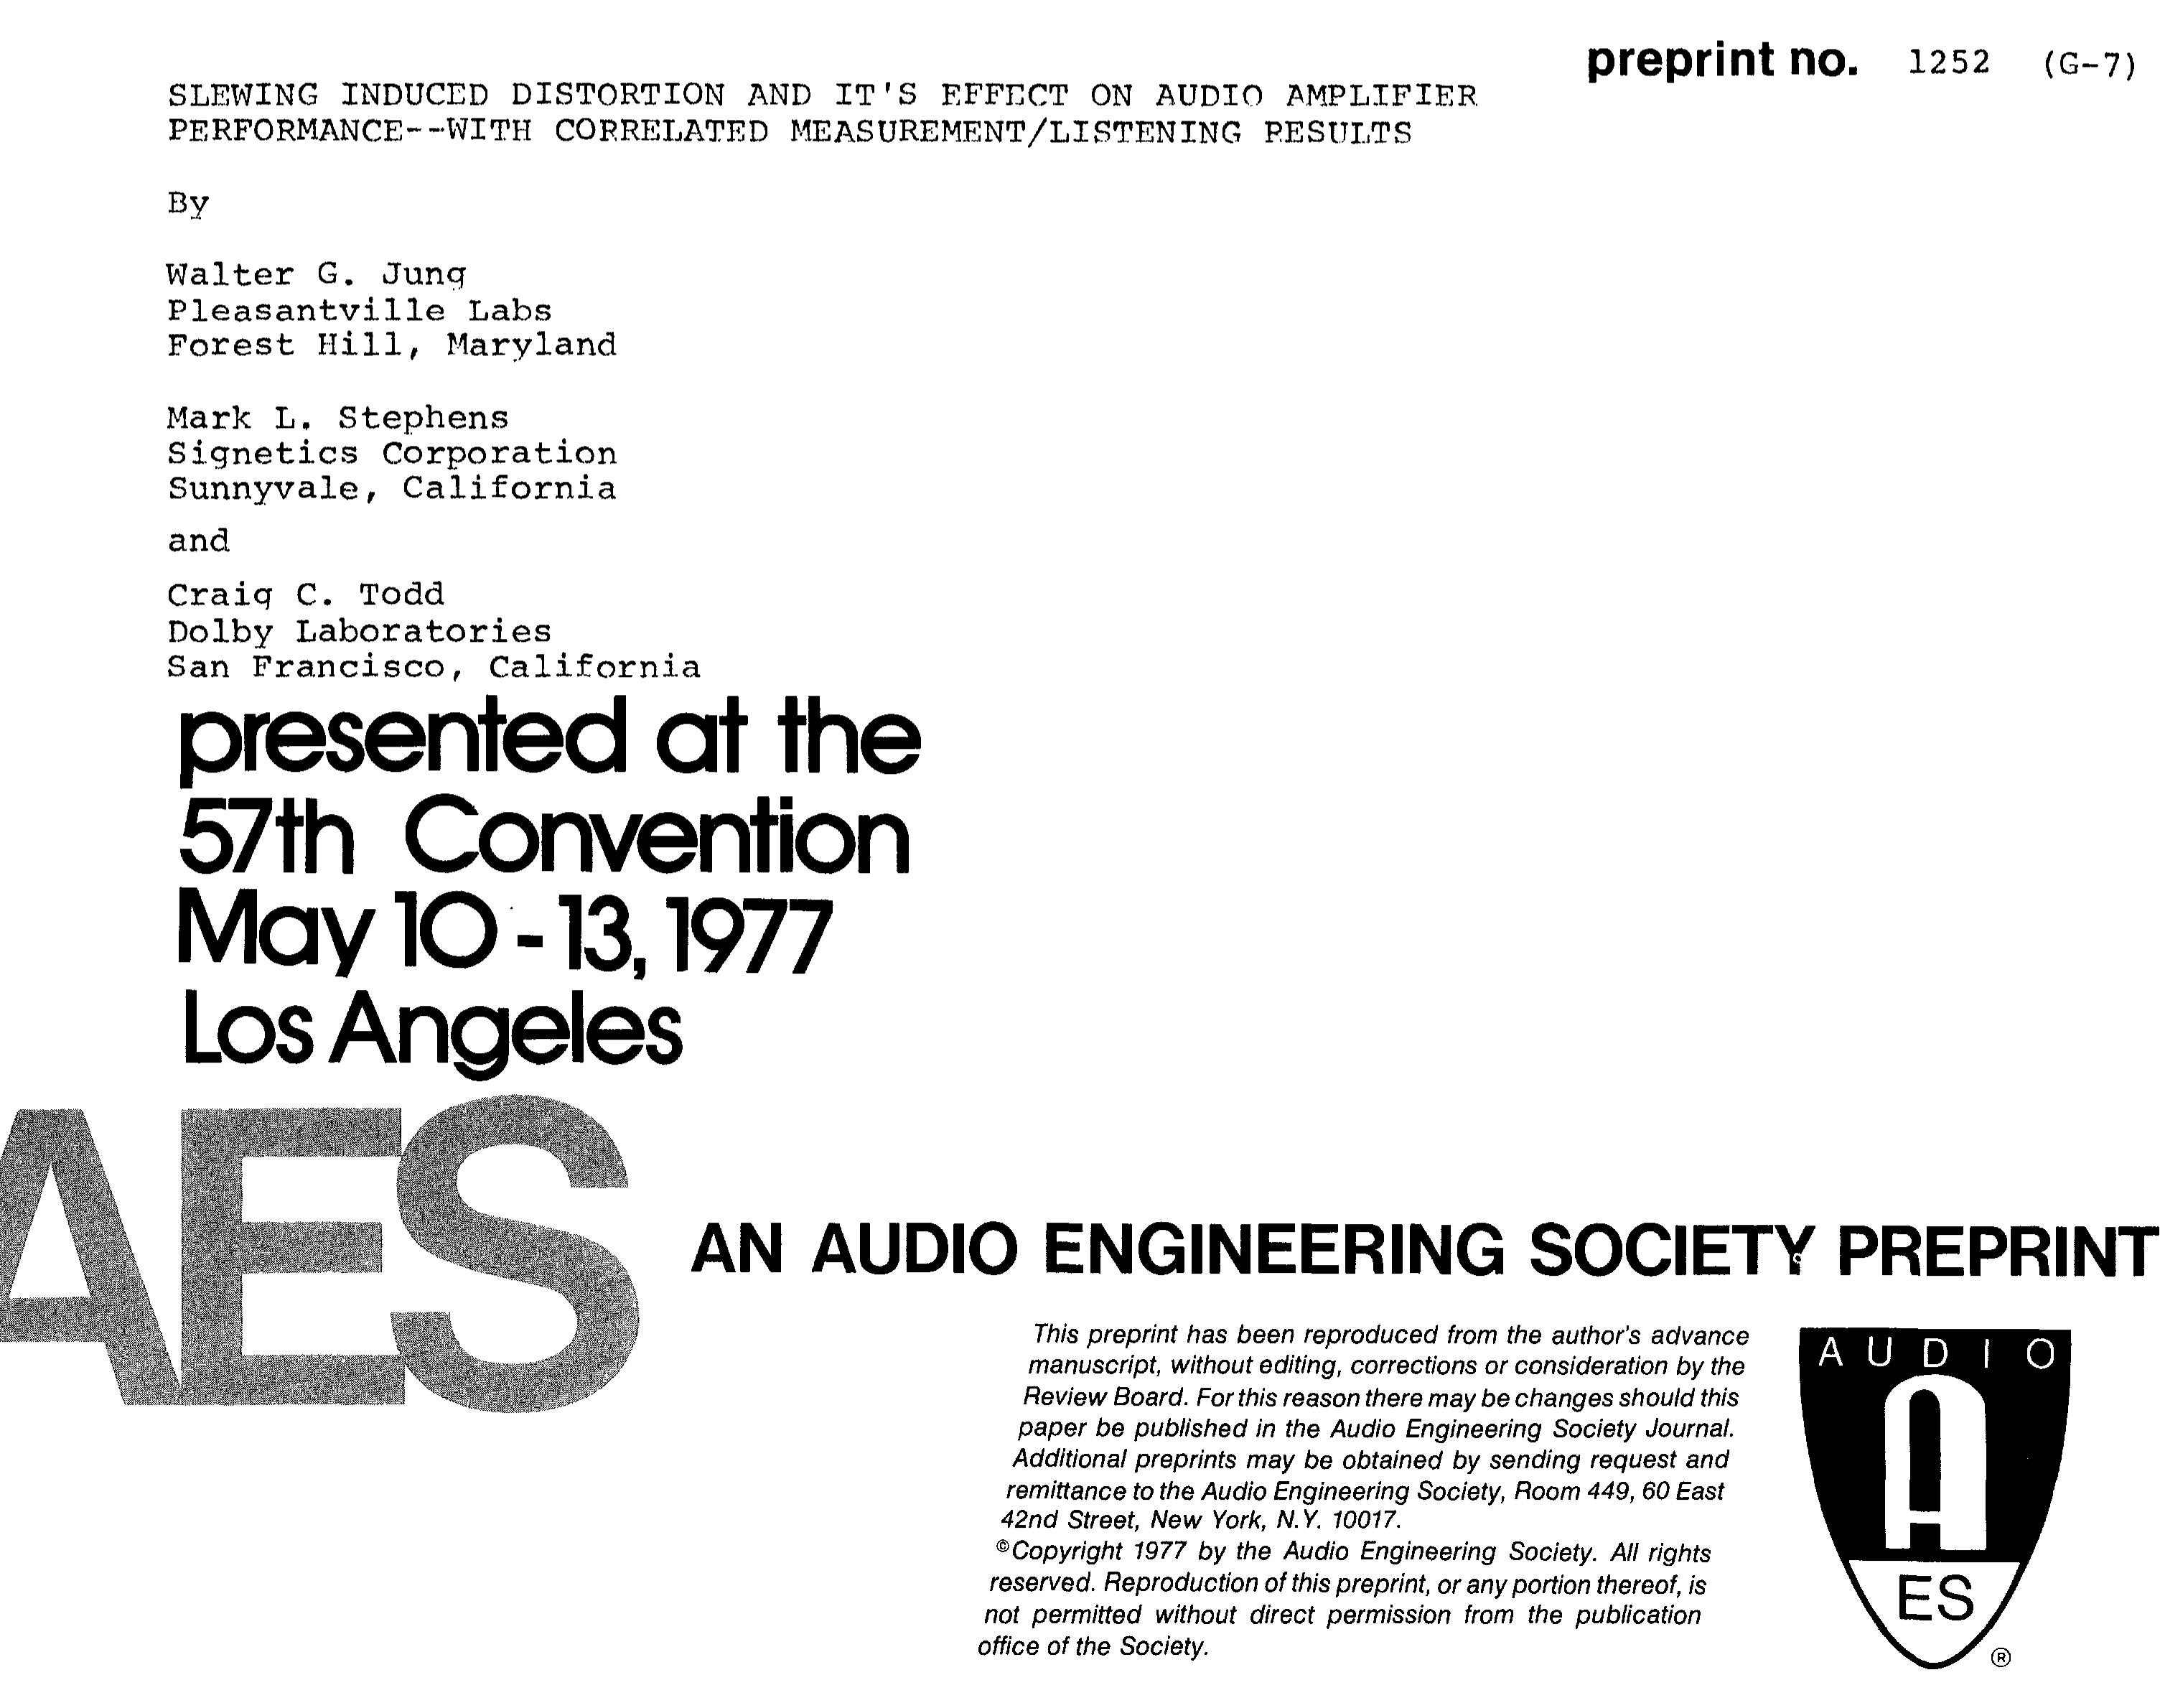 Aes E Library Slewing Induced Distortion And Its Effect On Audio Ne5534 Amplifier Performancewith Correlated Measurement Listening Results